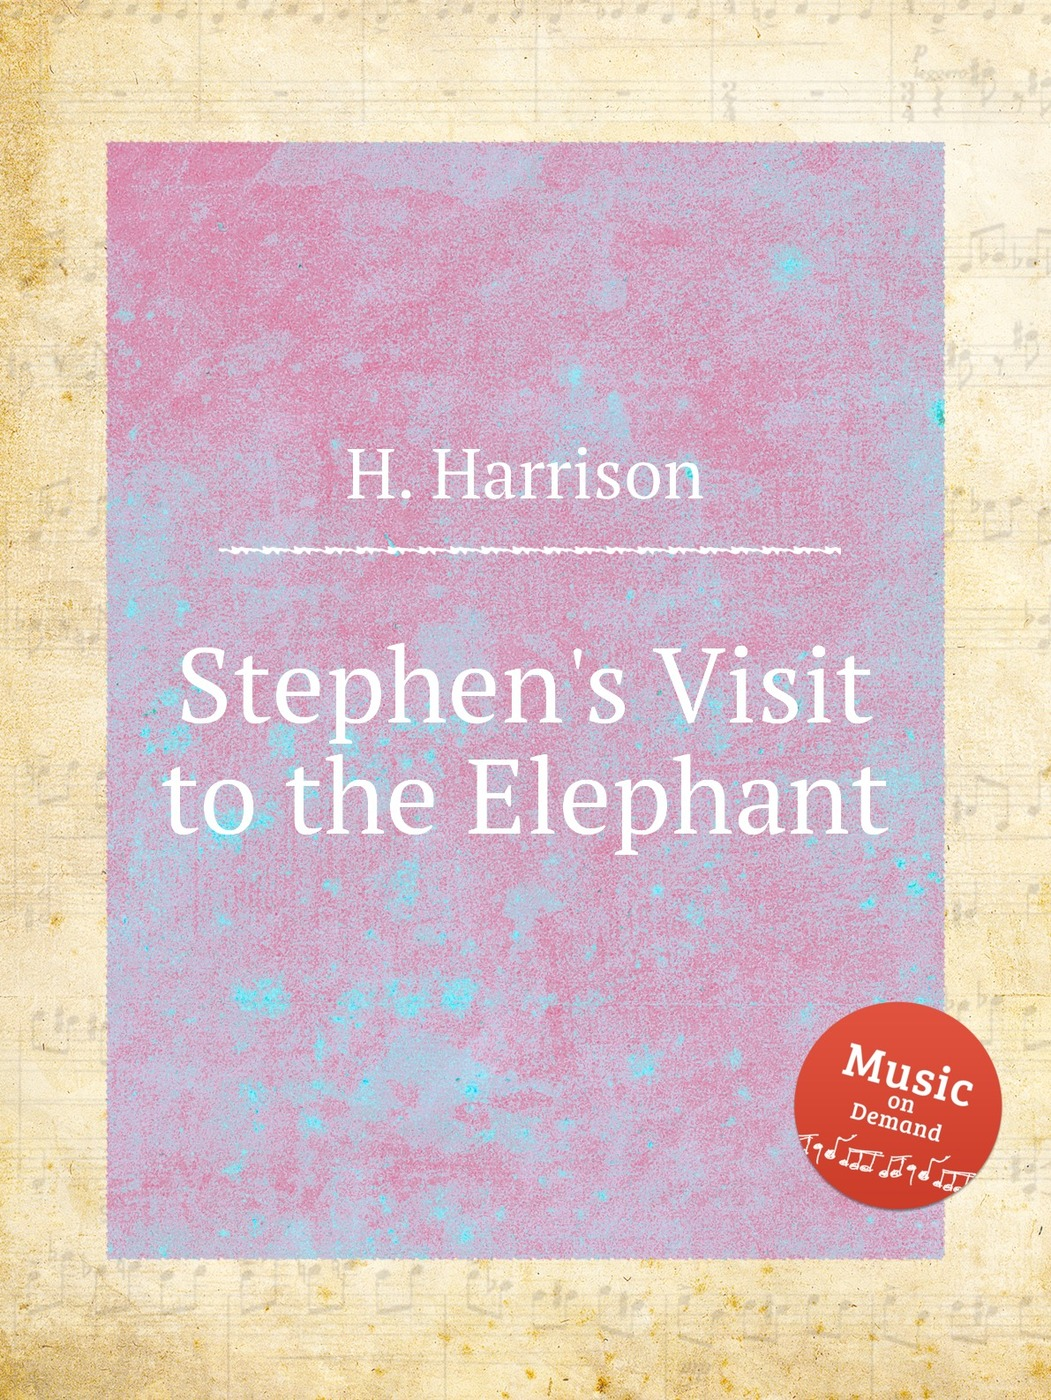 Stephen's Visit to the Elephant